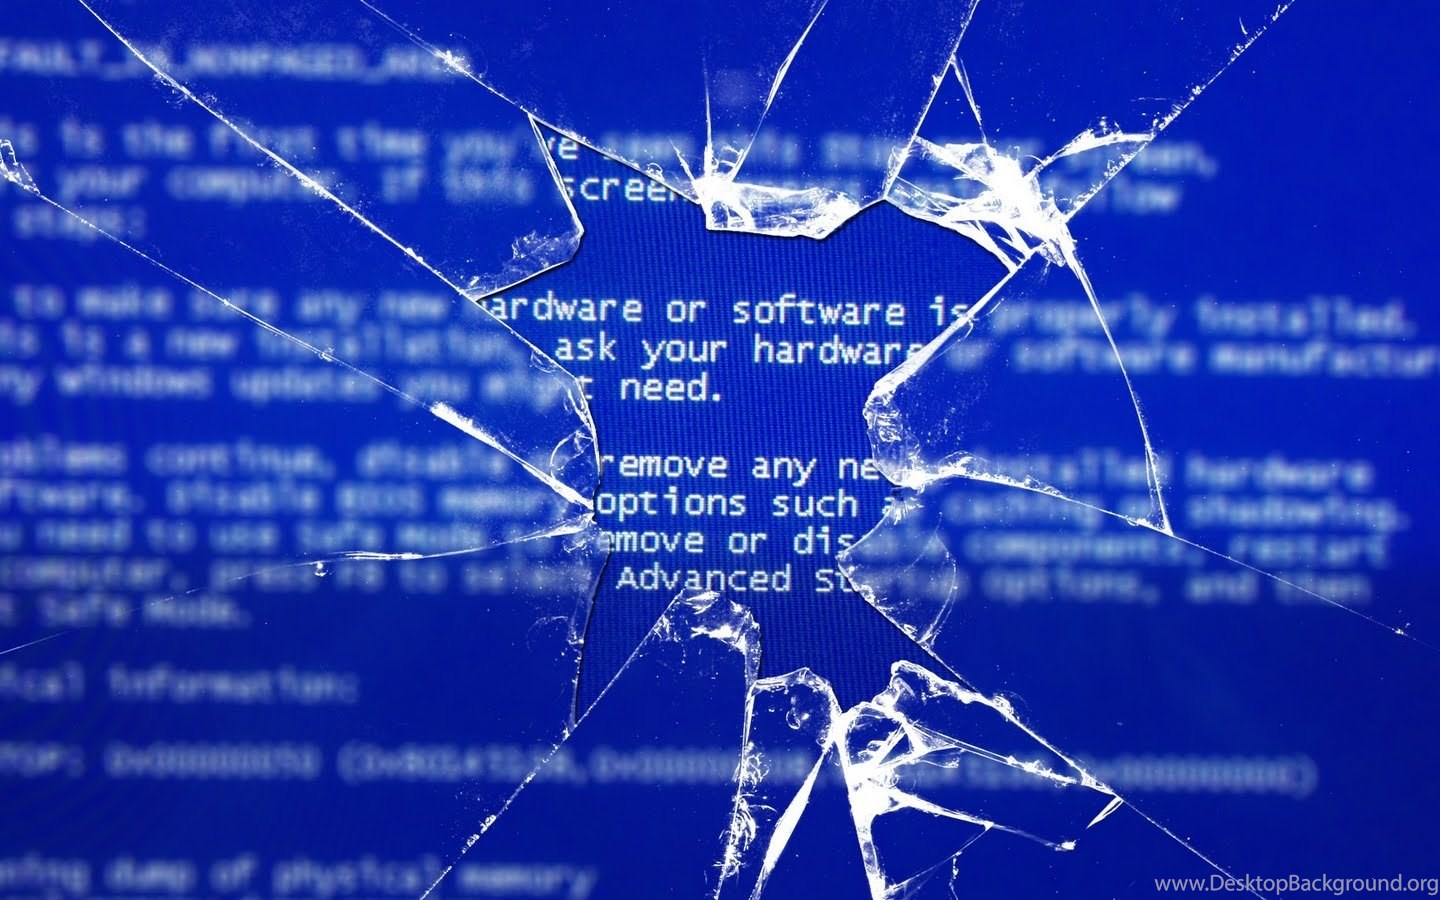 Wallpapers Funny Epic Windows Bsod Broken Glass Hd Os